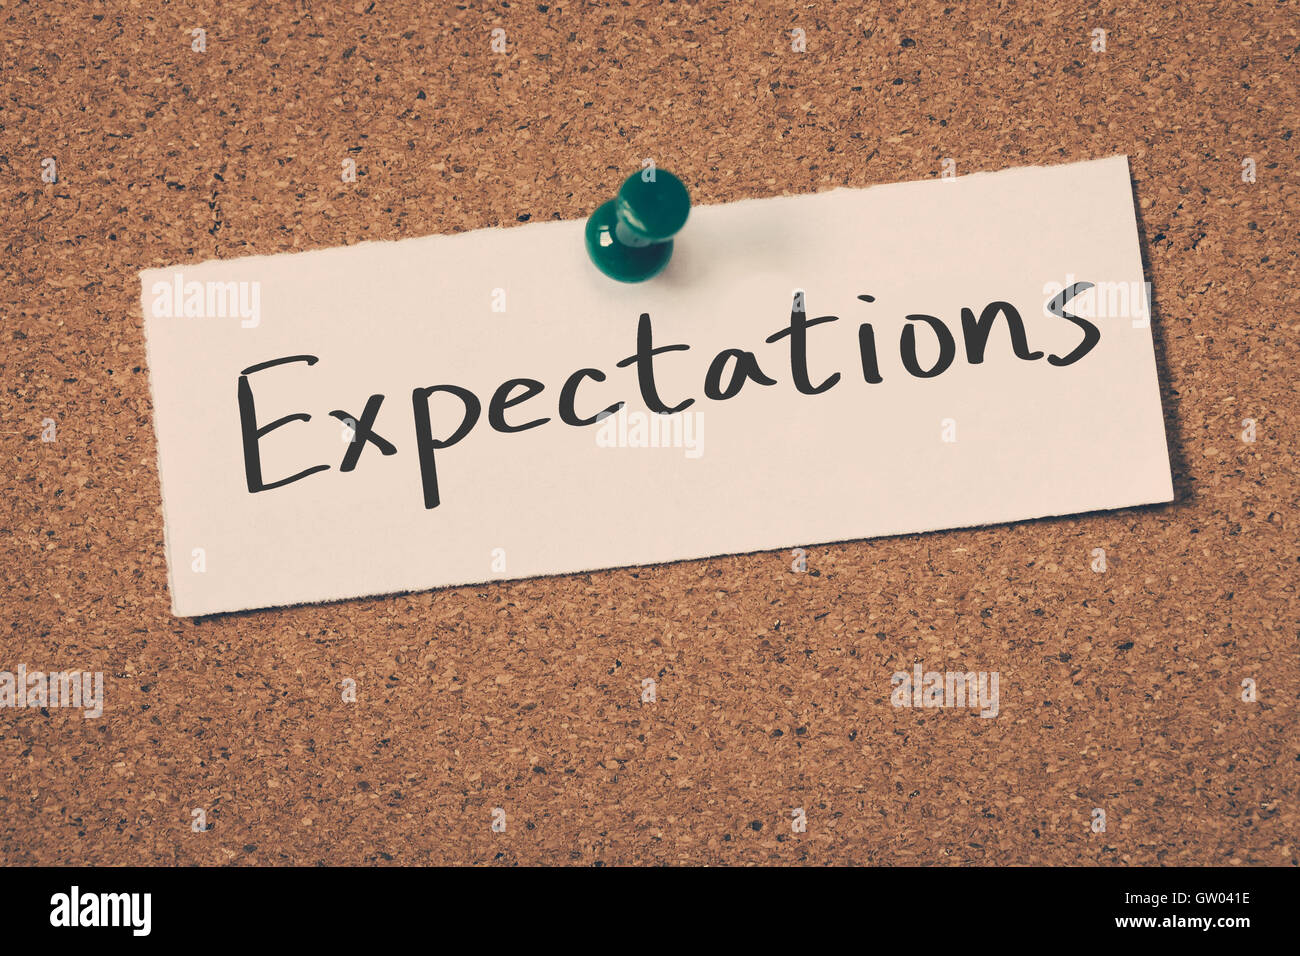 Expectations - Stock Image